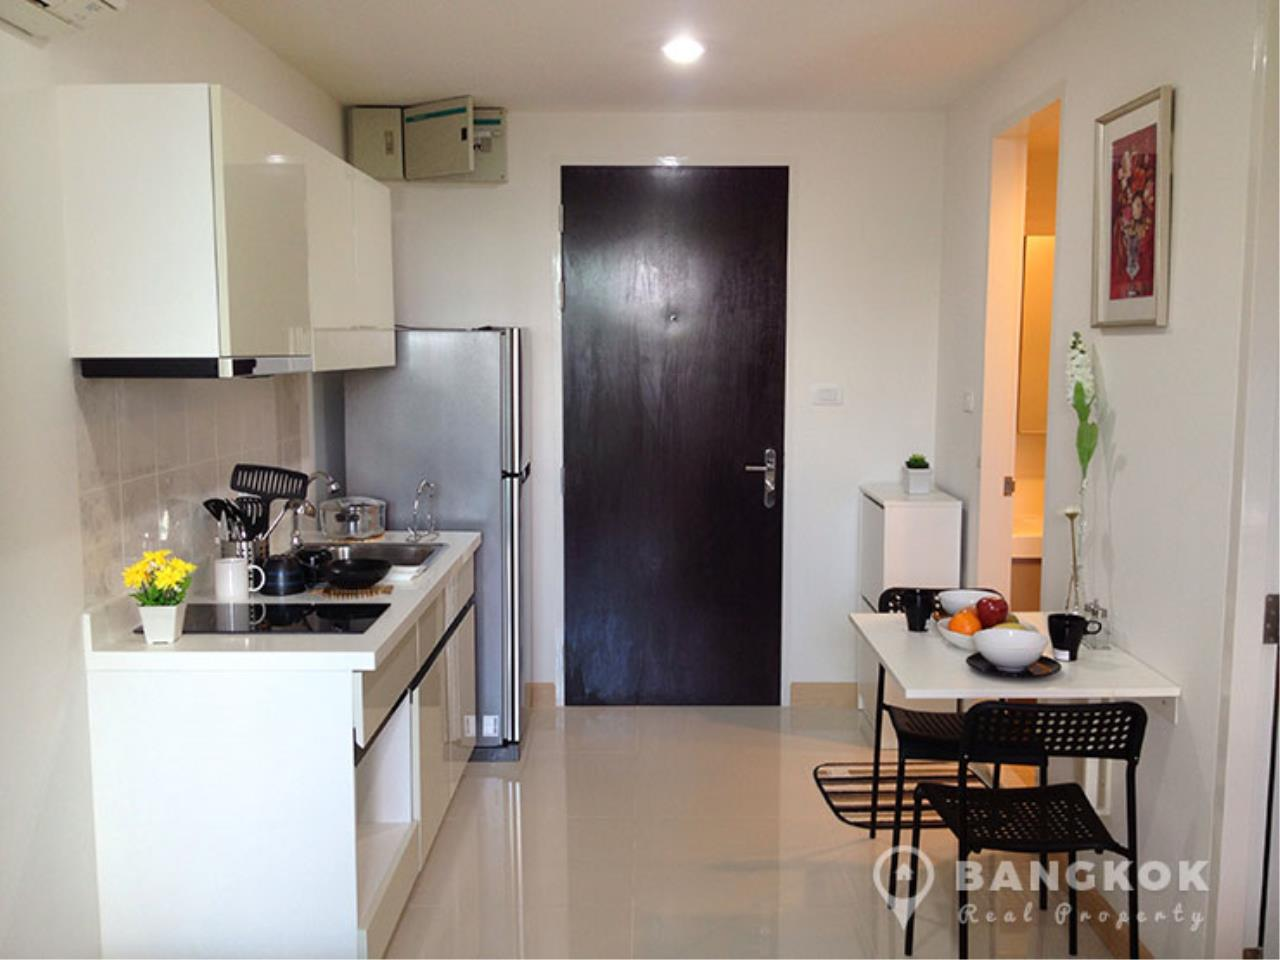 Bangkok Real Property Agency's The President Sukhumvit | Superb Modern 1 Bed at On Nut BTS 1